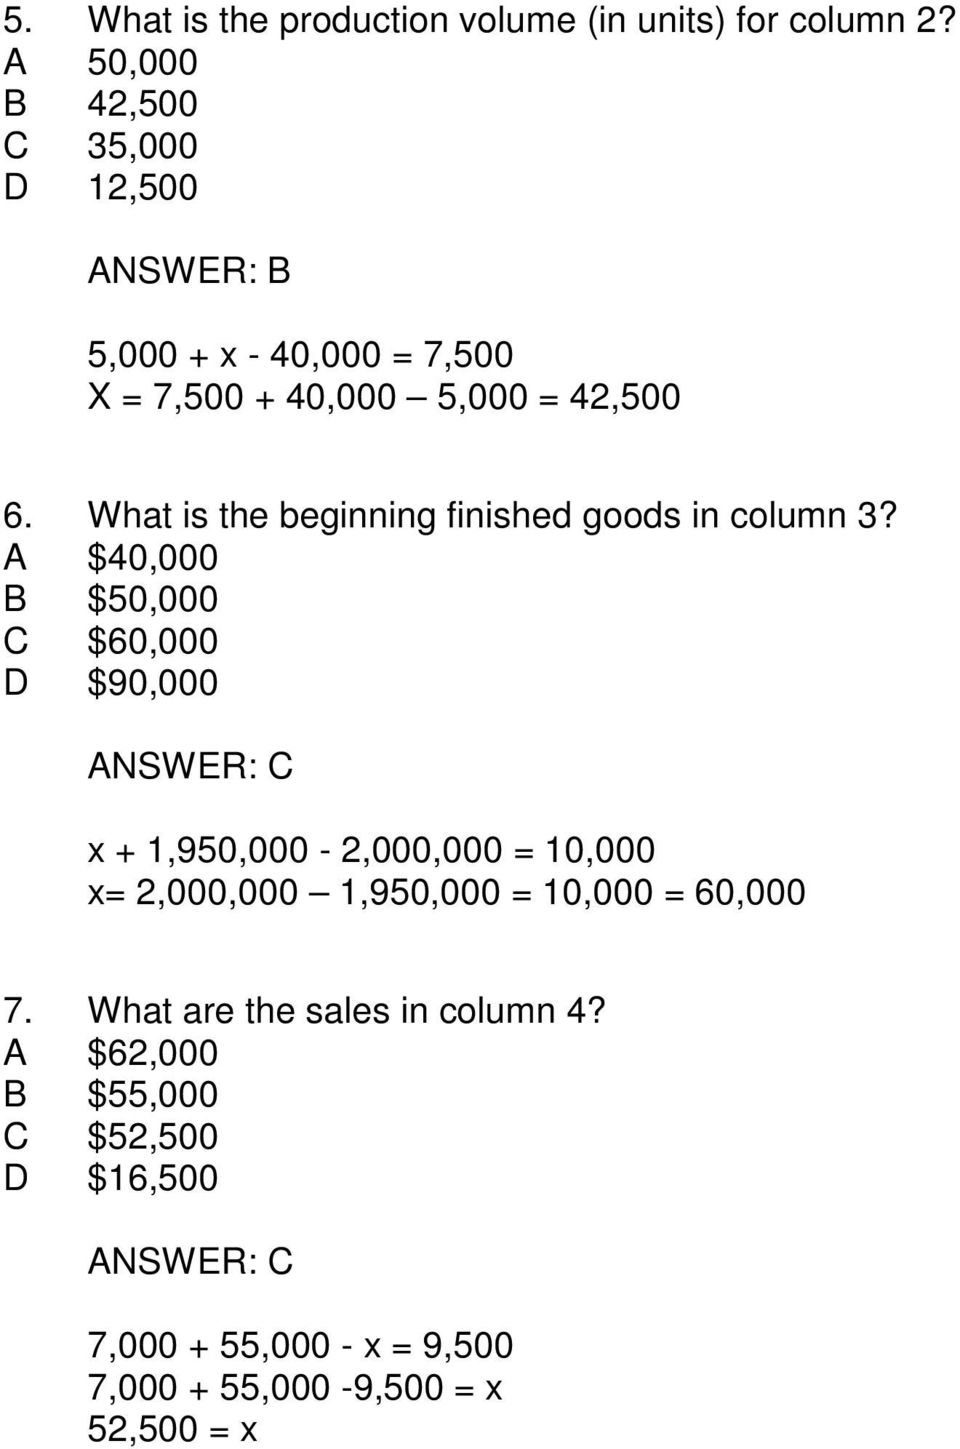 What is the beginning finished goods in column 3?